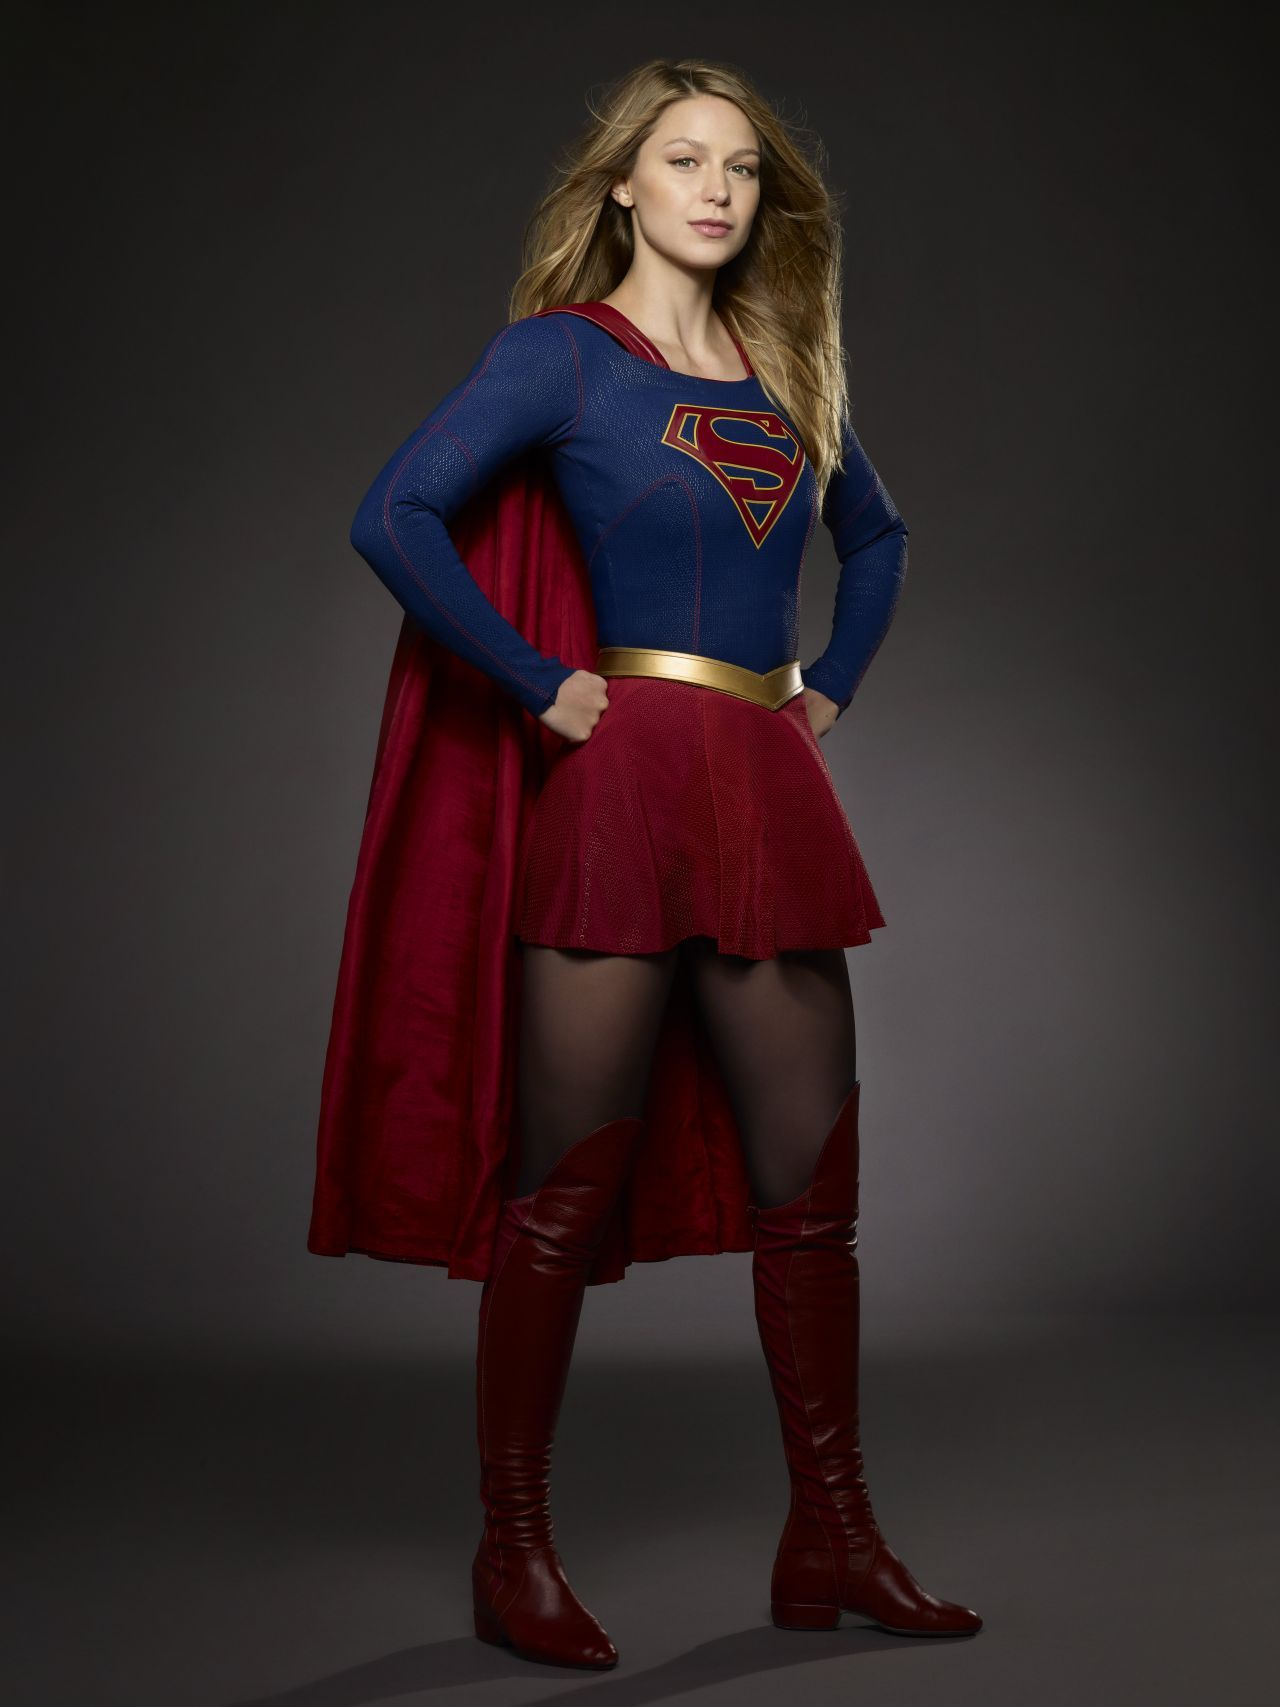 Supergirl Posters Promotional Stills Melissa Benoist Filmofilia Supergirl Cosplay Supergirl Costume Supergirl Movie